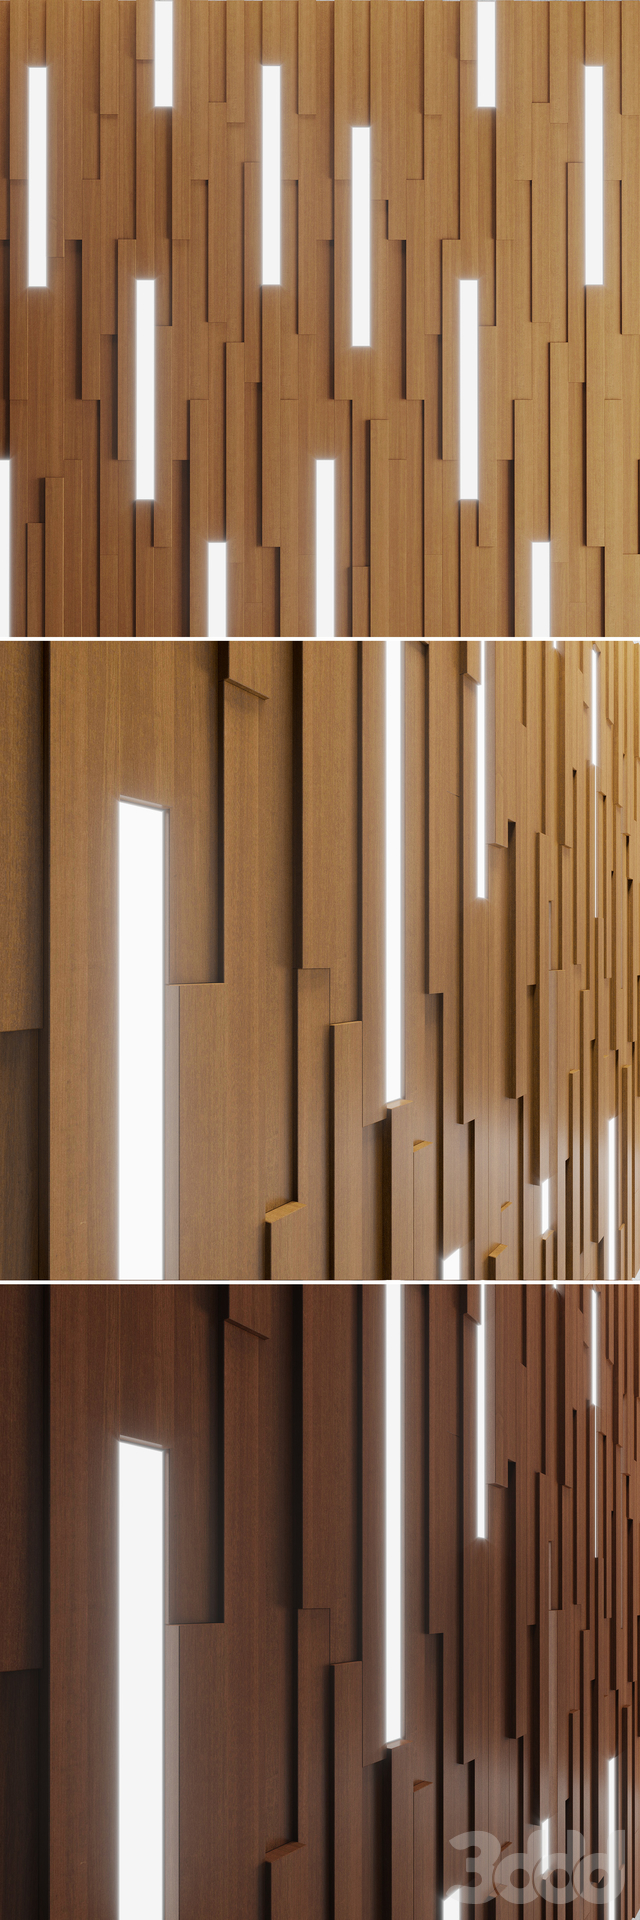 Wall Wooden Stripes